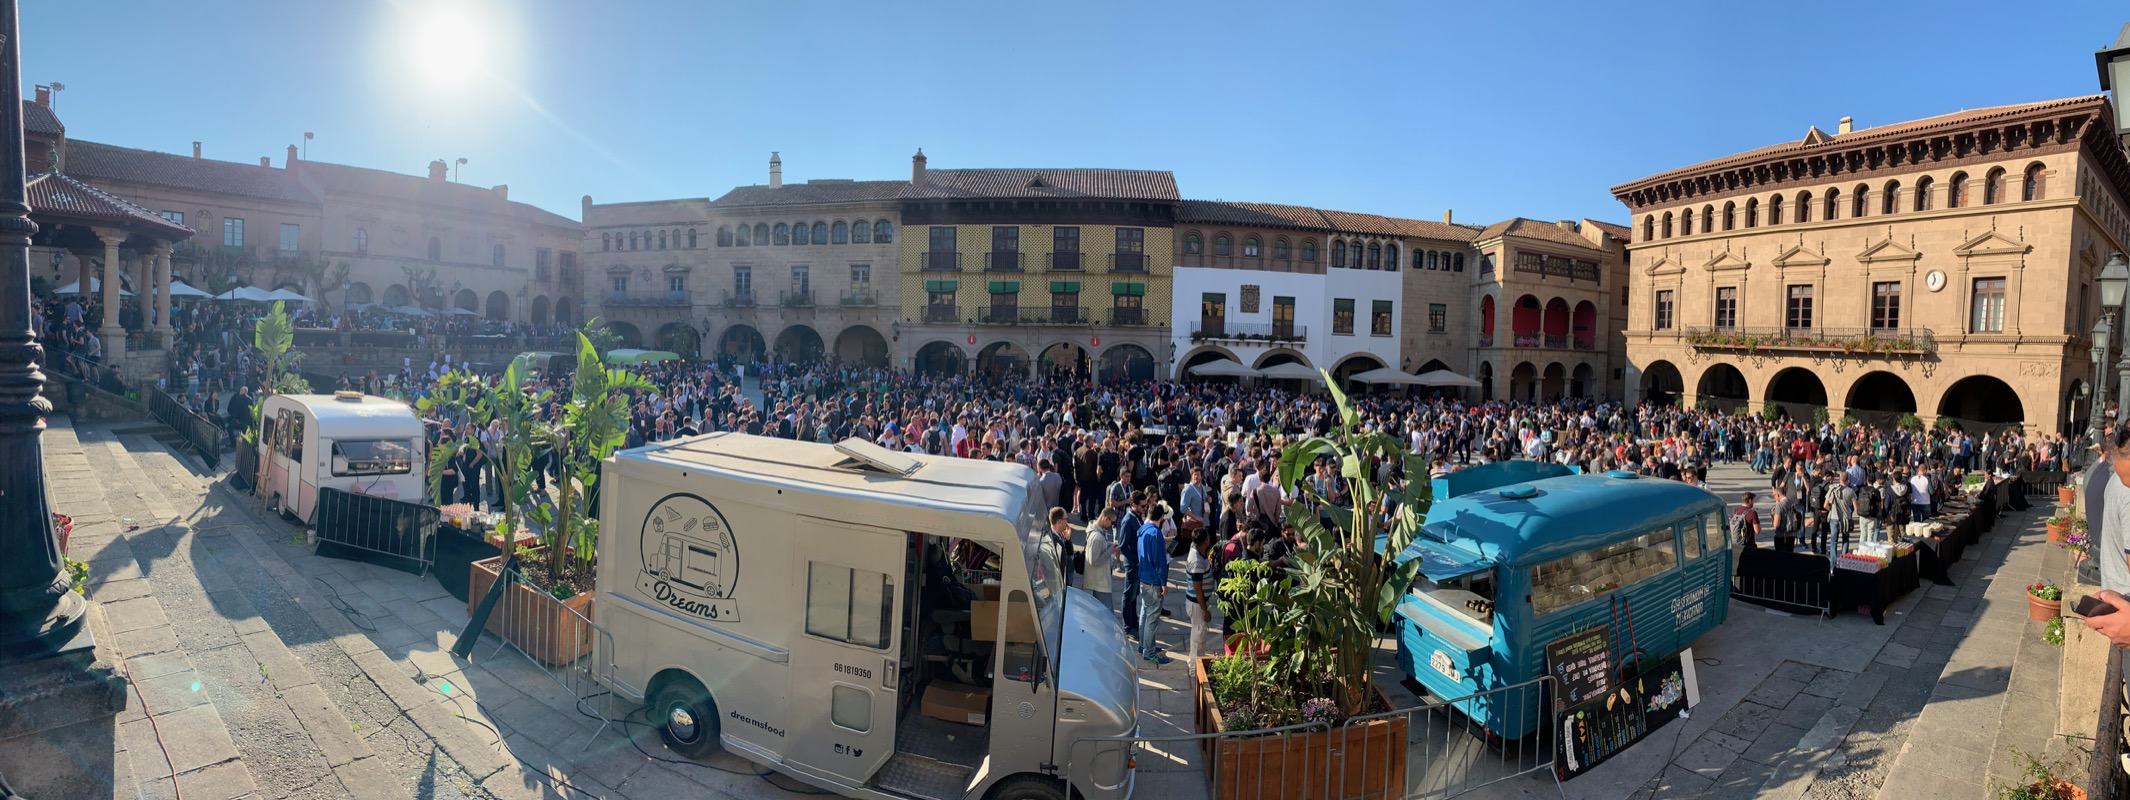 The main square of Pople Espanyol was filled to burst with KubeCon attendees.